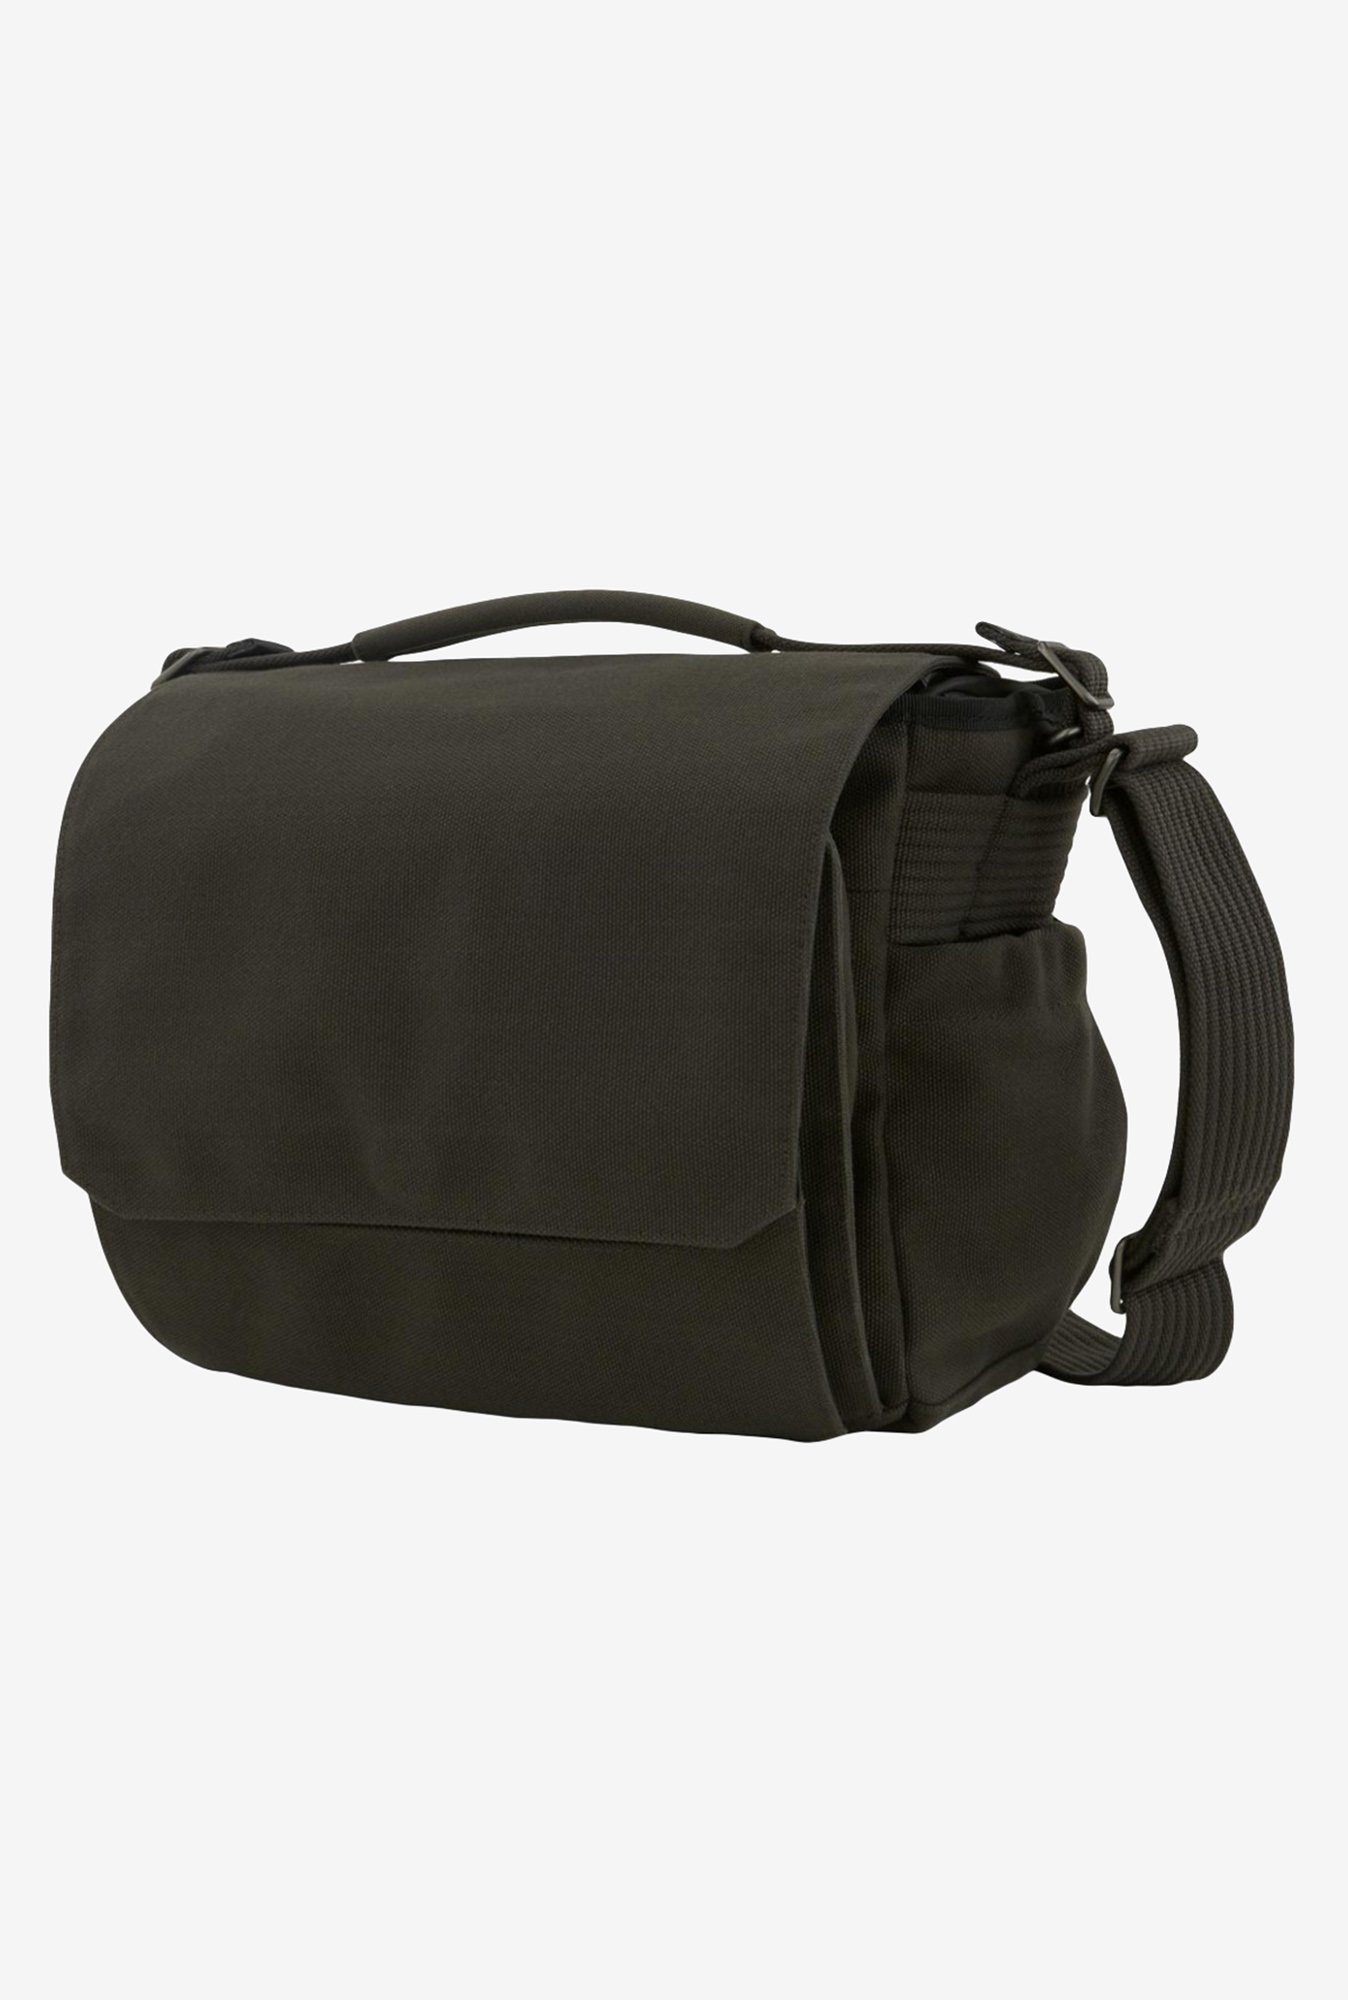 Lowepro Pro Messenger 160AW Shoulder Bag Slate Grey